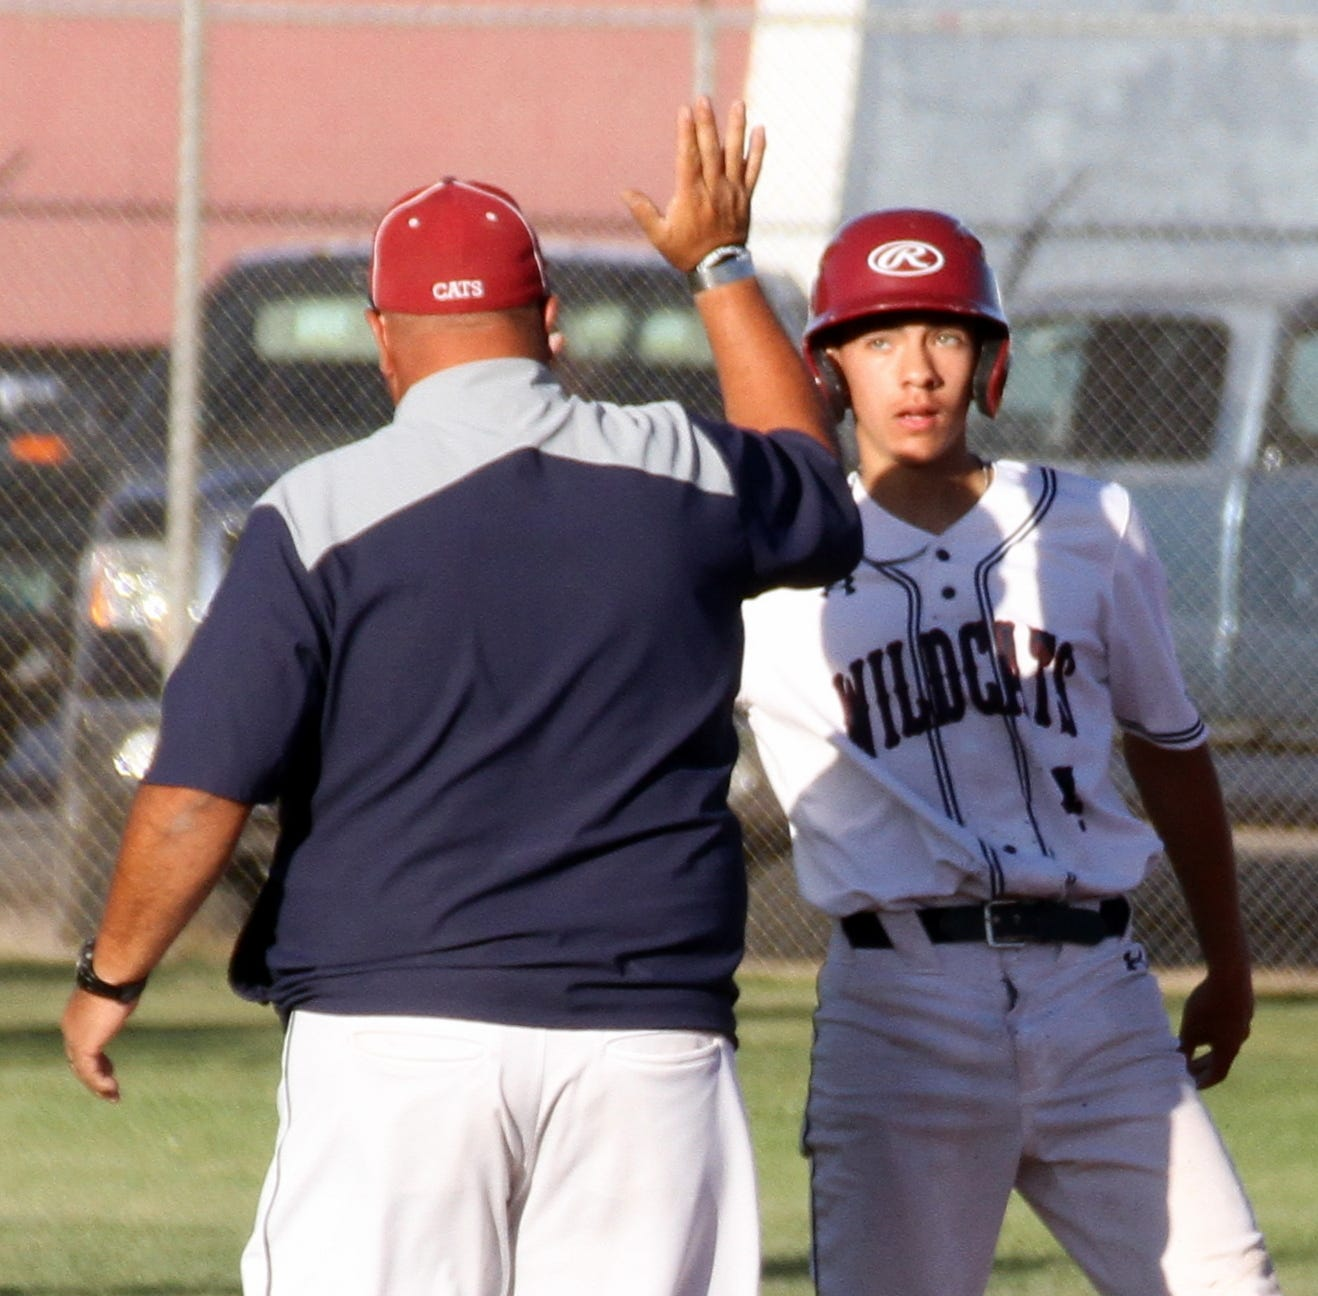 Deming High Wildcats opens best-of-3 baseball series on Thursday in Las Cruces, NM